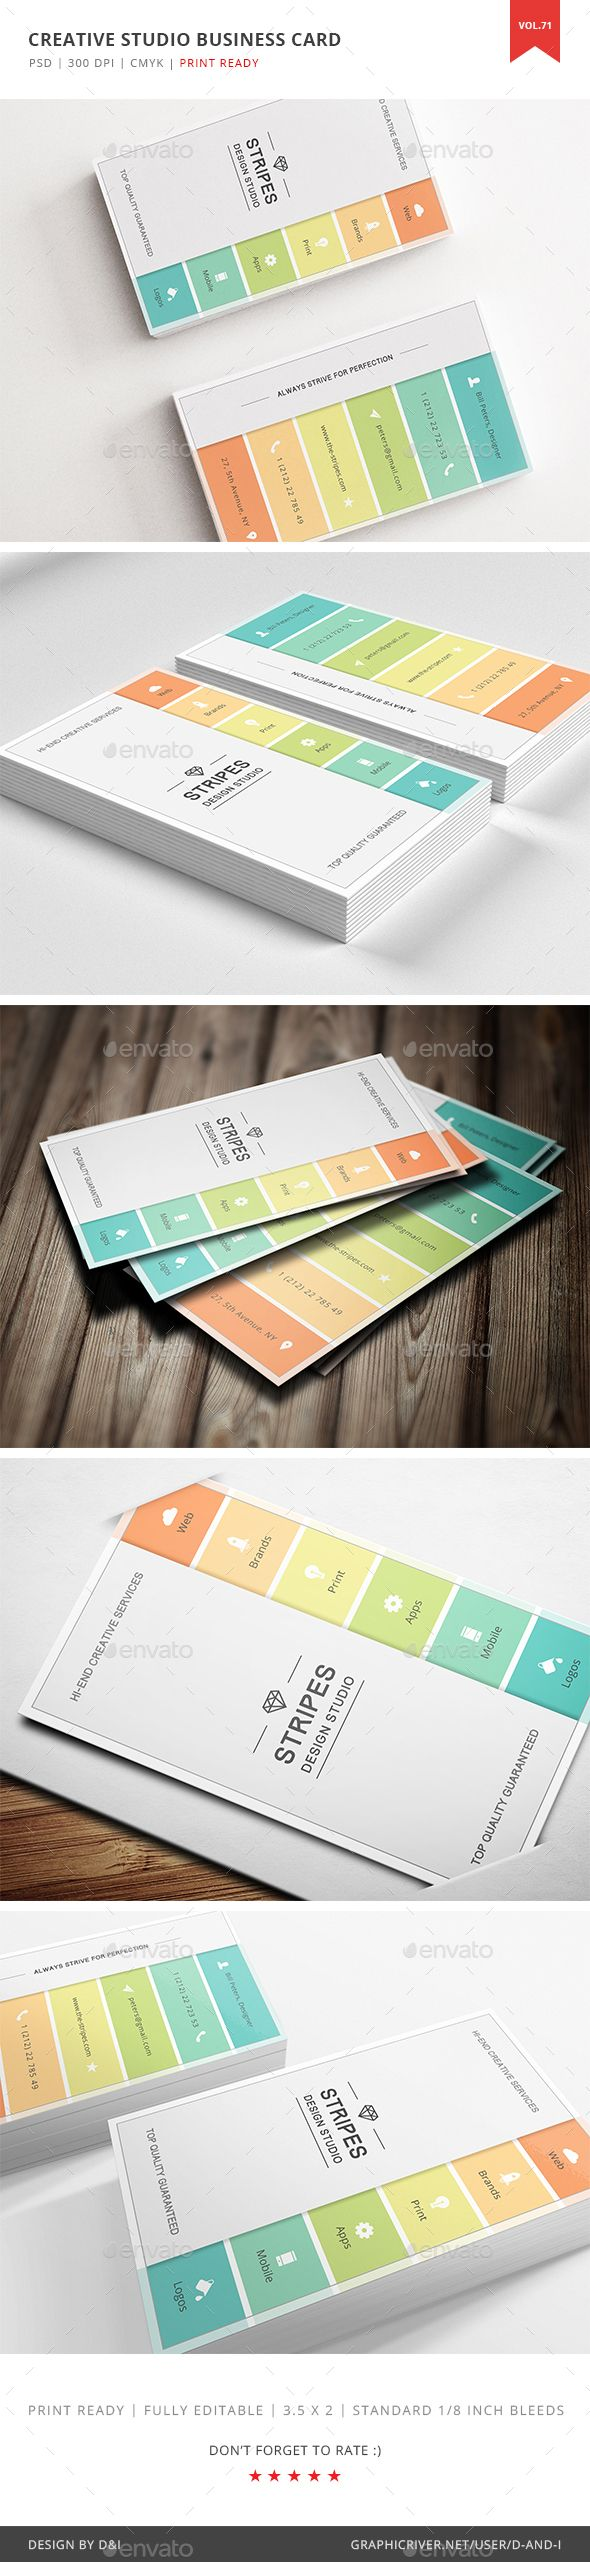 Amazing 1 Inch Hexagon Template Thin 1 Page Resumes Examples Rectangular 1.25 Button Template 10 Best Resumes Old 10 Tips To Making A Resume Pink100 Dollar Bill Template 25  Best Ideas About Business Card Templates On Pinterest ..